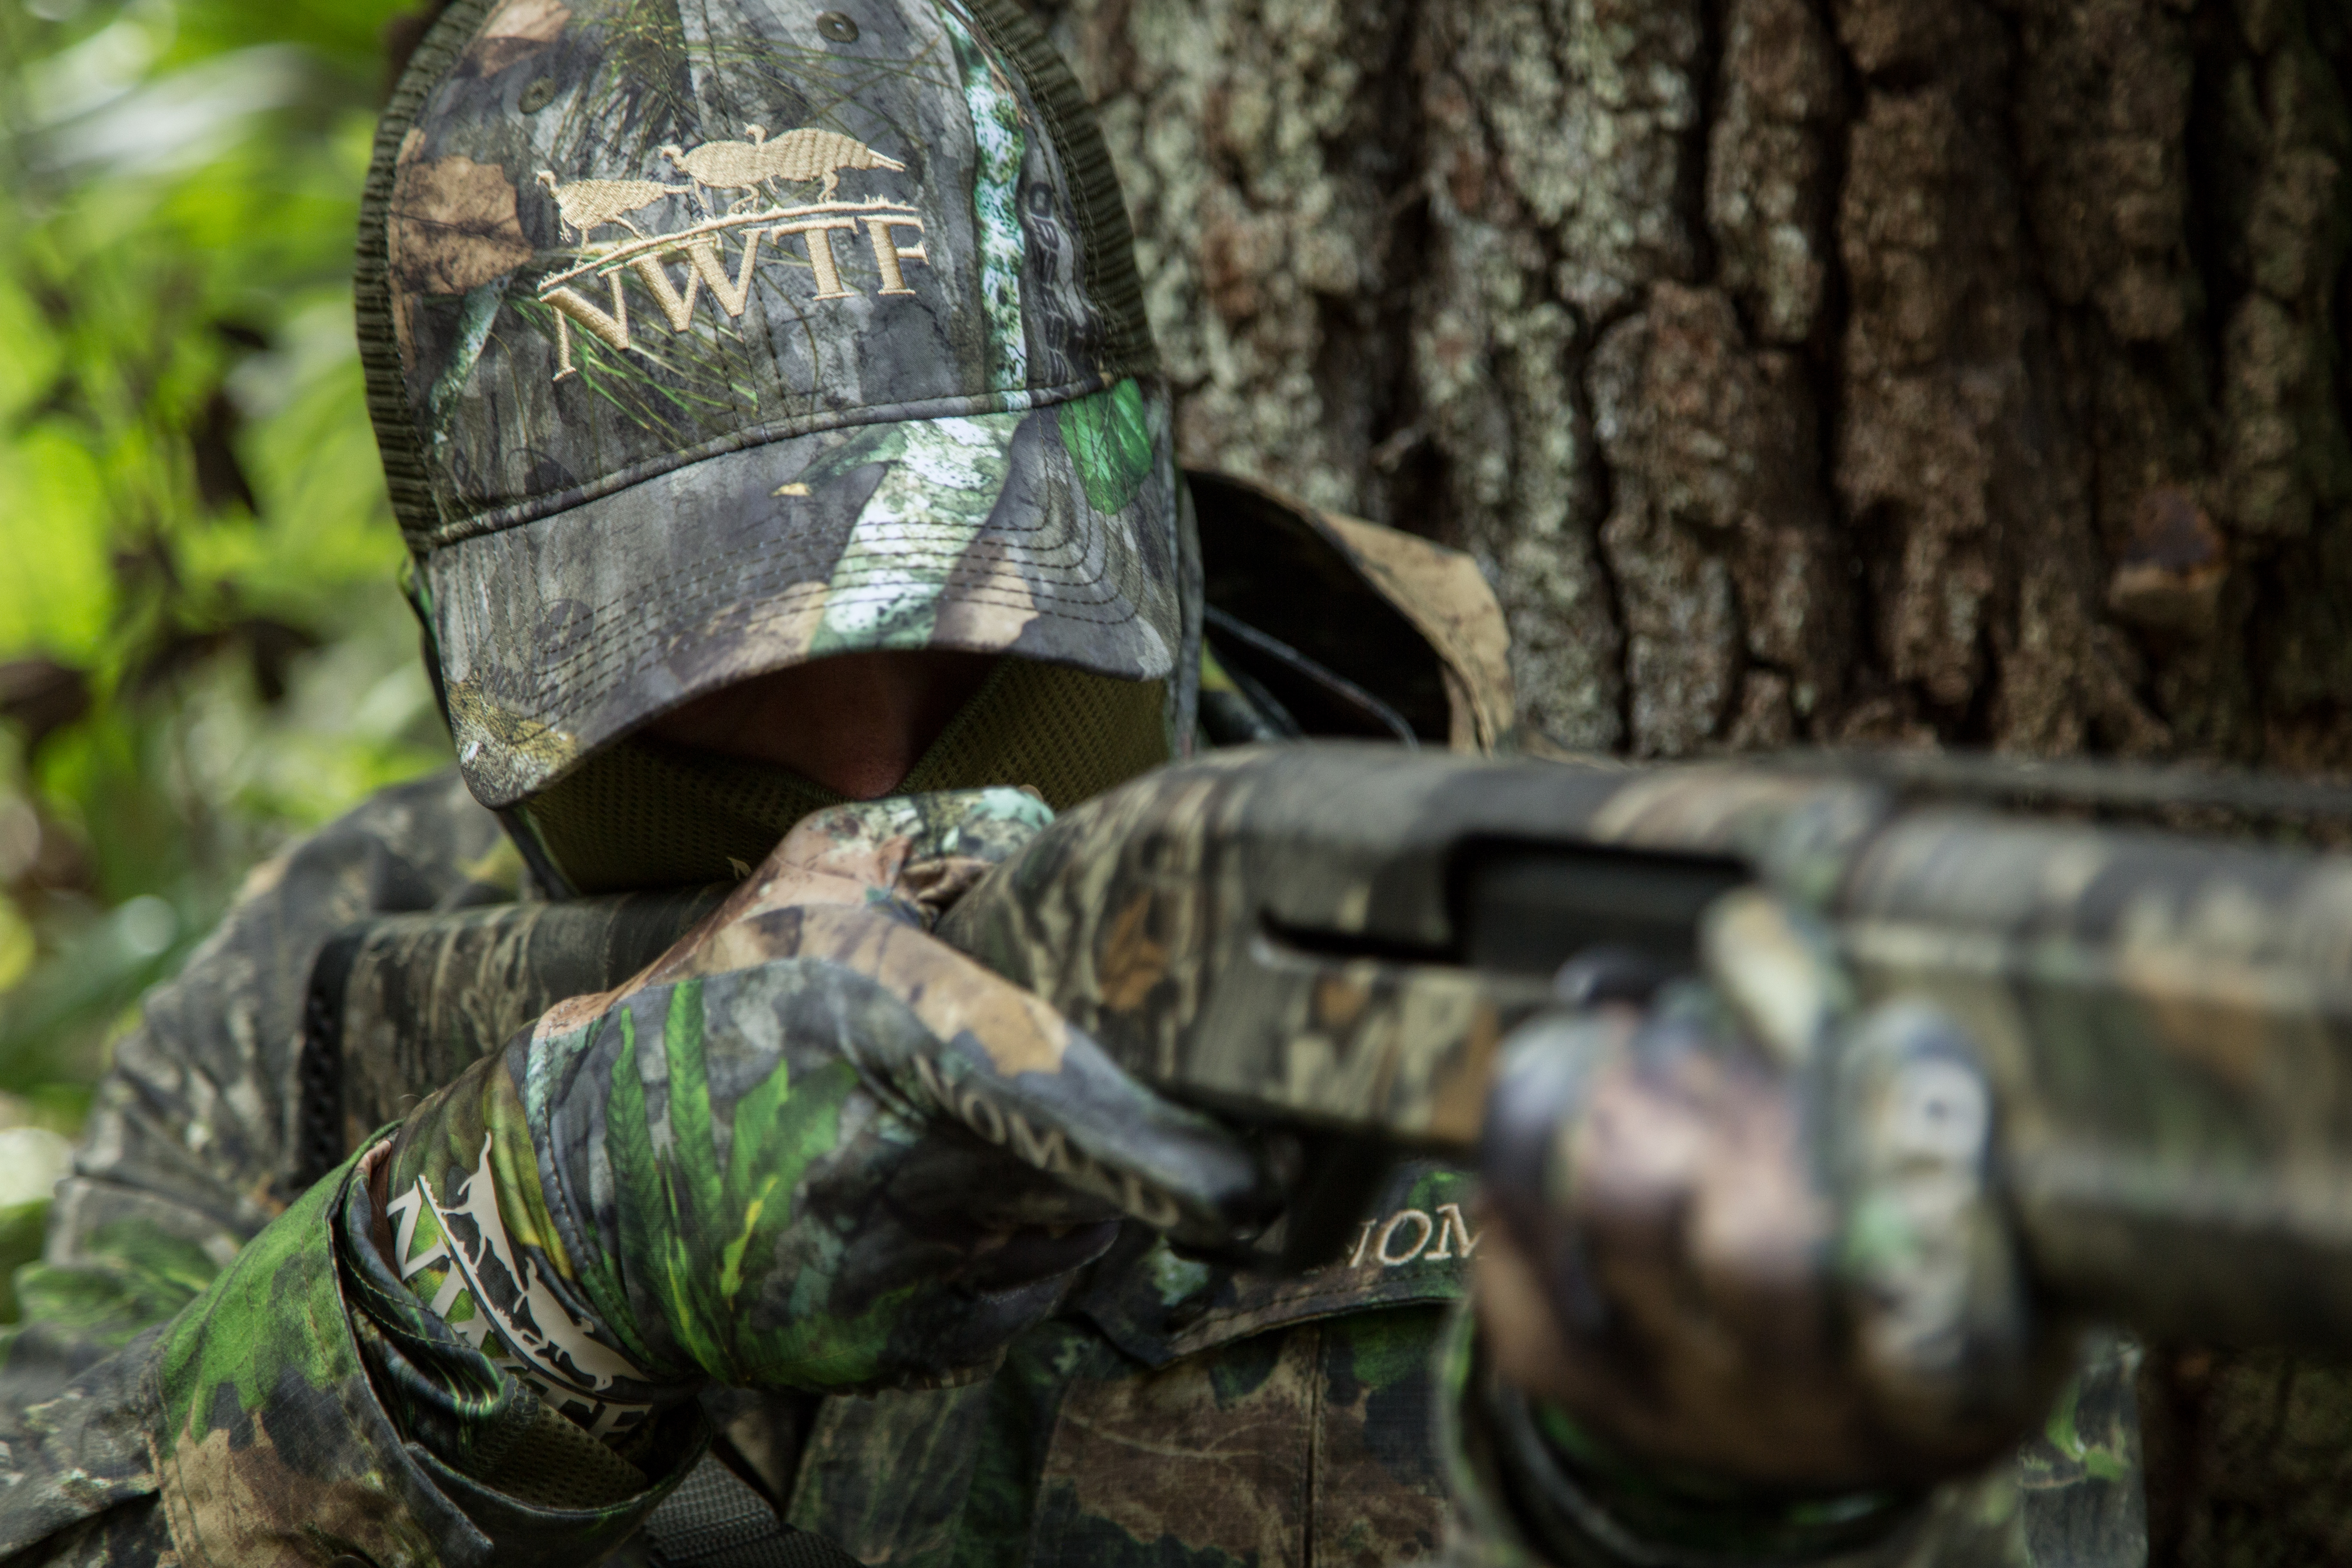 41af18c49c0a0 As excited as we all get for spring turkey season, safety before the hunt,  on the hunt and after the hunt should be at the top of everyone's mind.